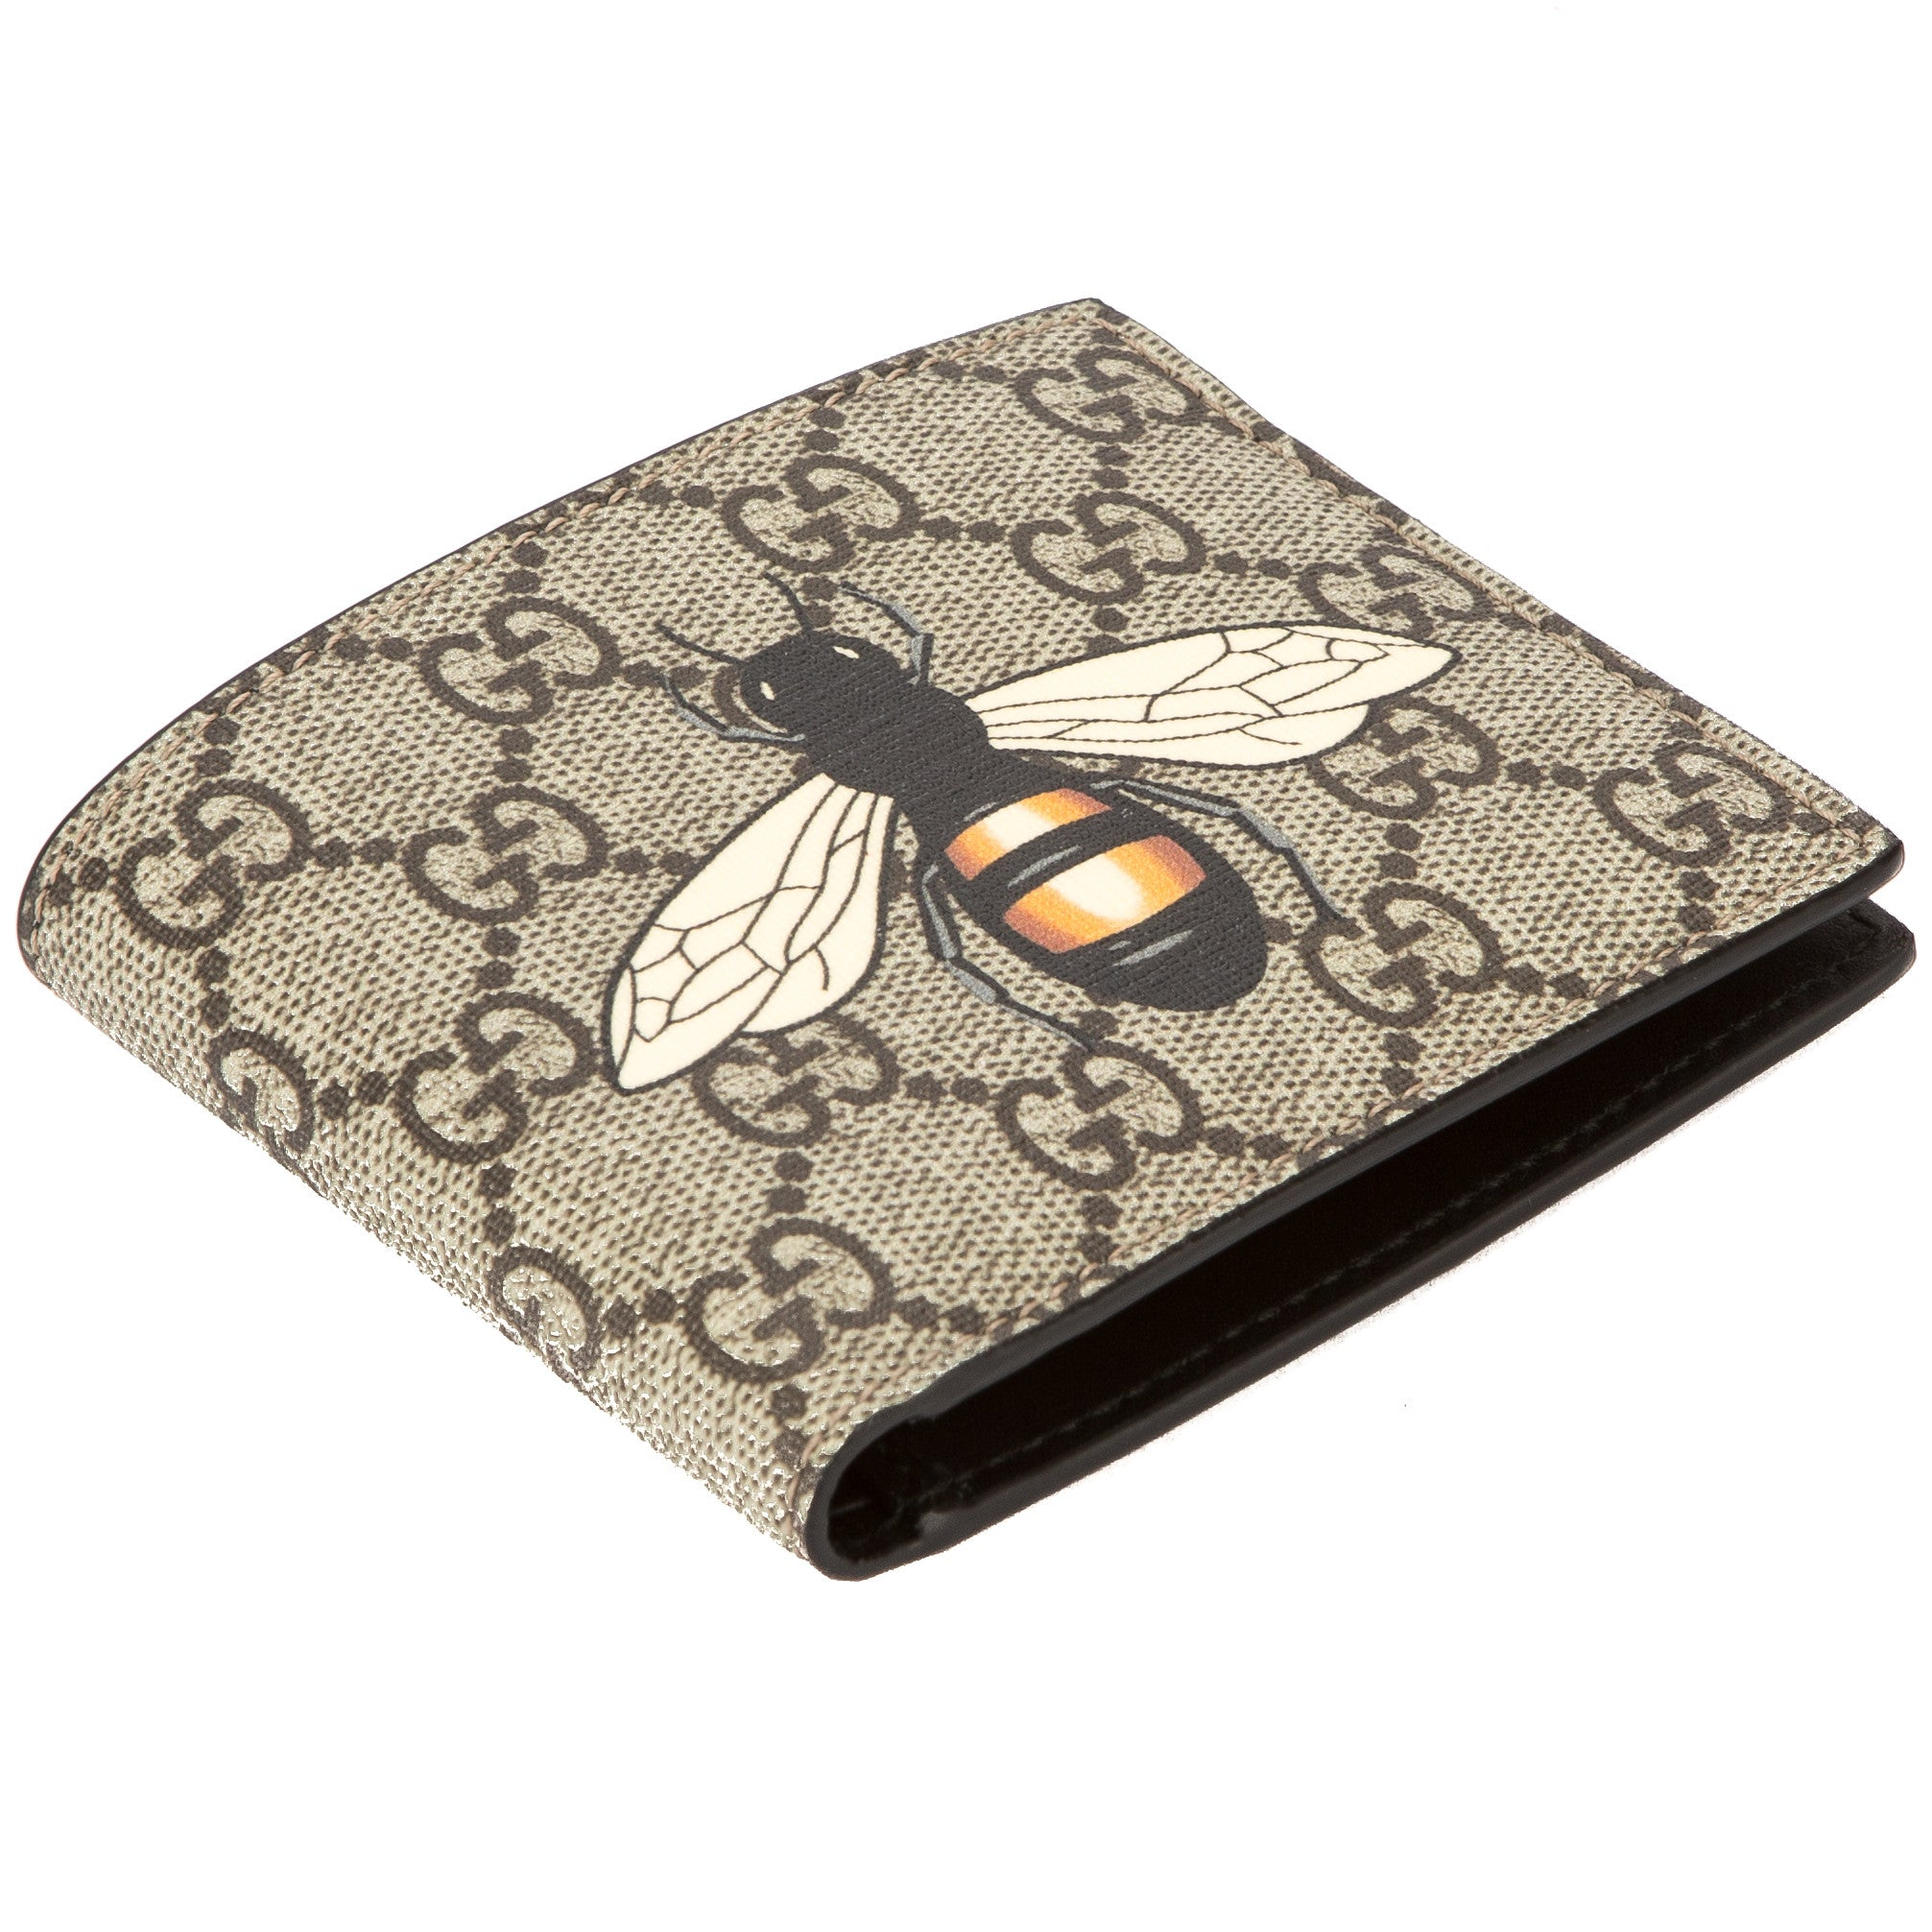 f203805176b Gucci GG Supreme Canvas Bee Print Wallet (New with Tags) - 3544010 ...